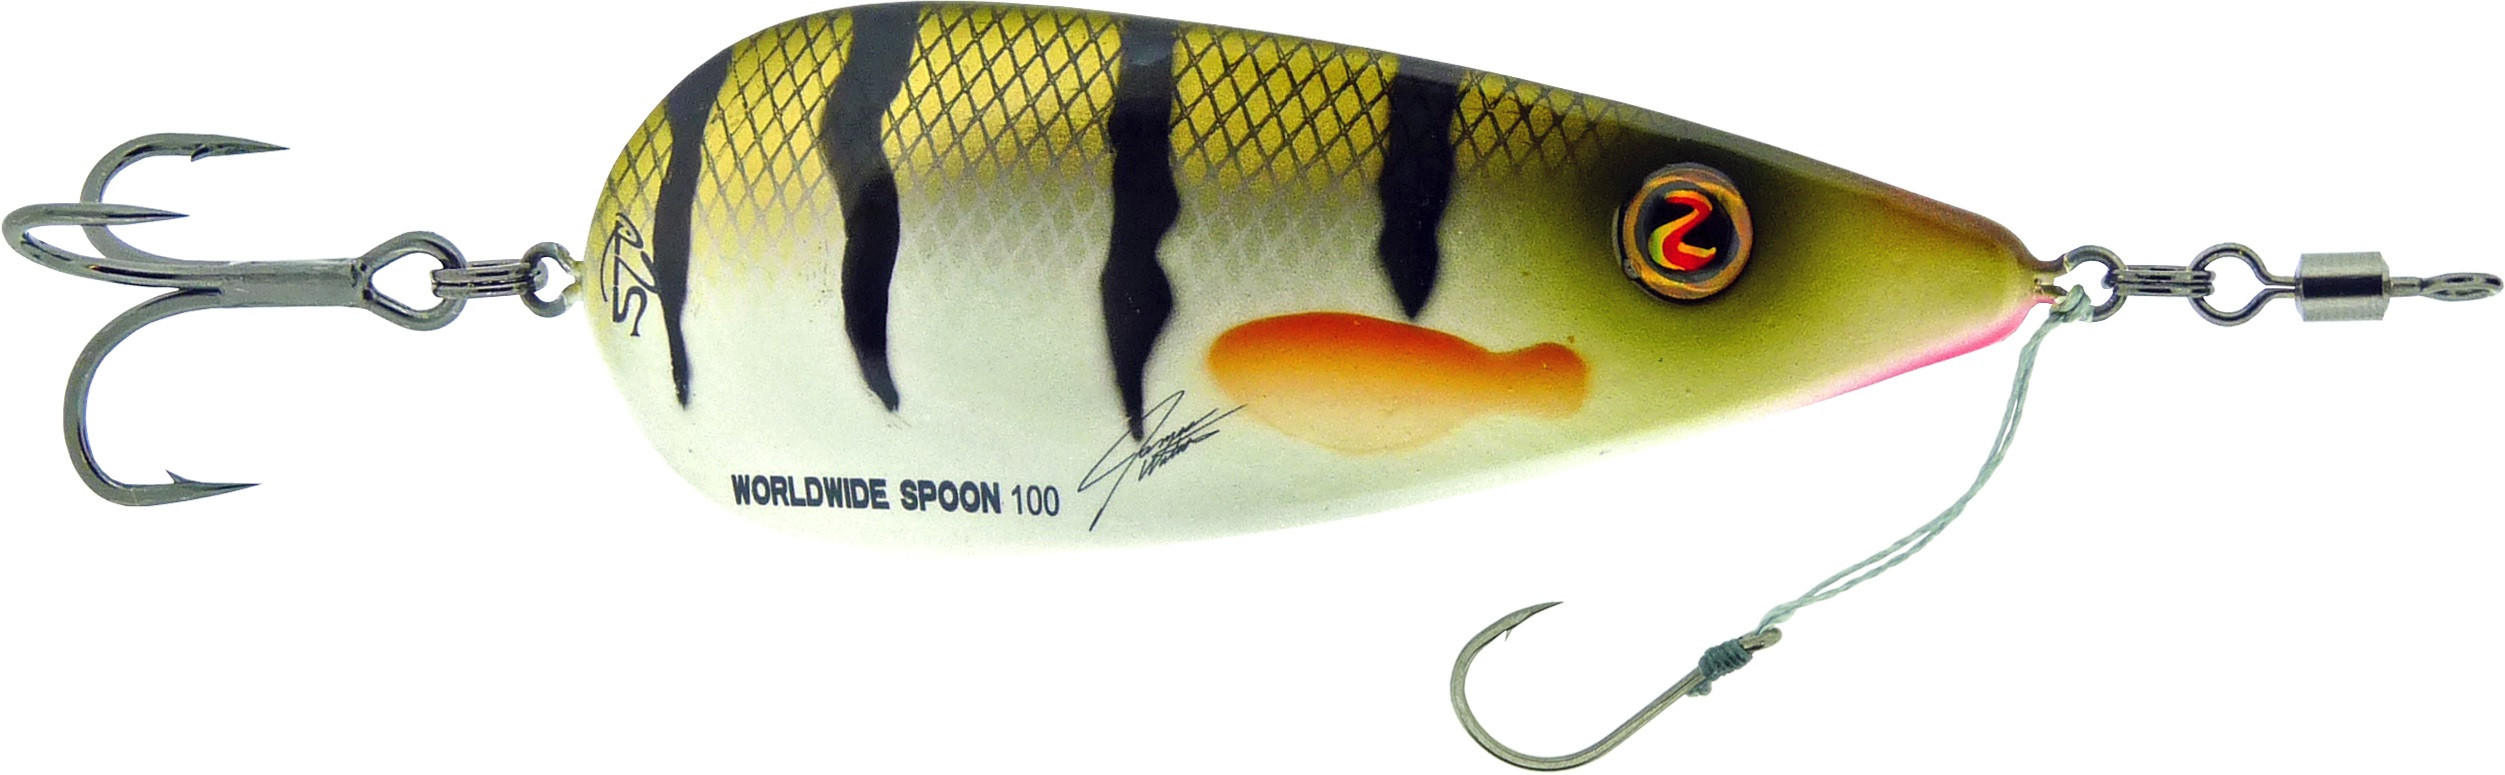 CUILLER ONDULANTE RIVER2SEA WORLDWIDE SPOON 100